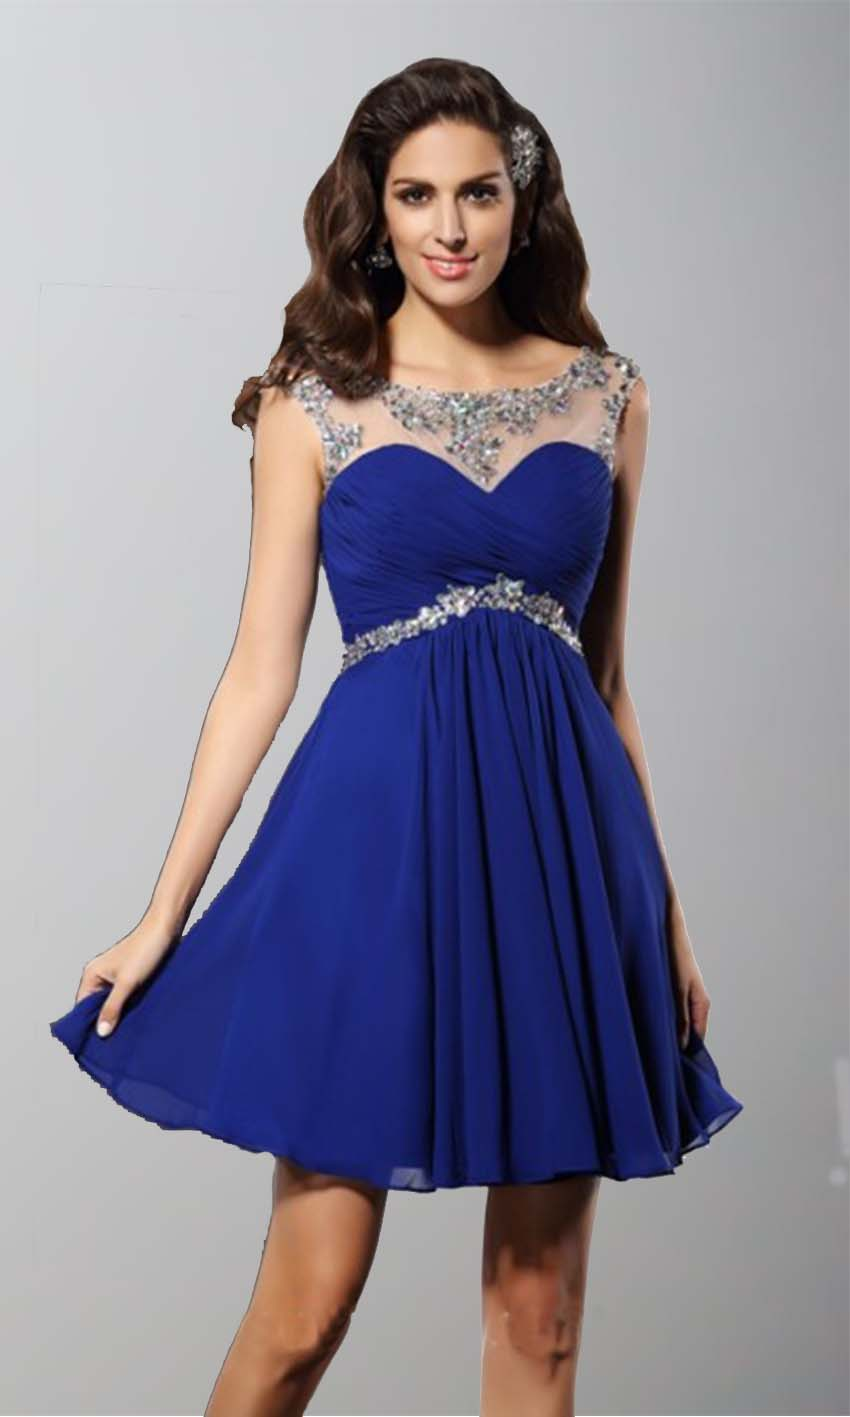 Blue and silver dresses uk cheap